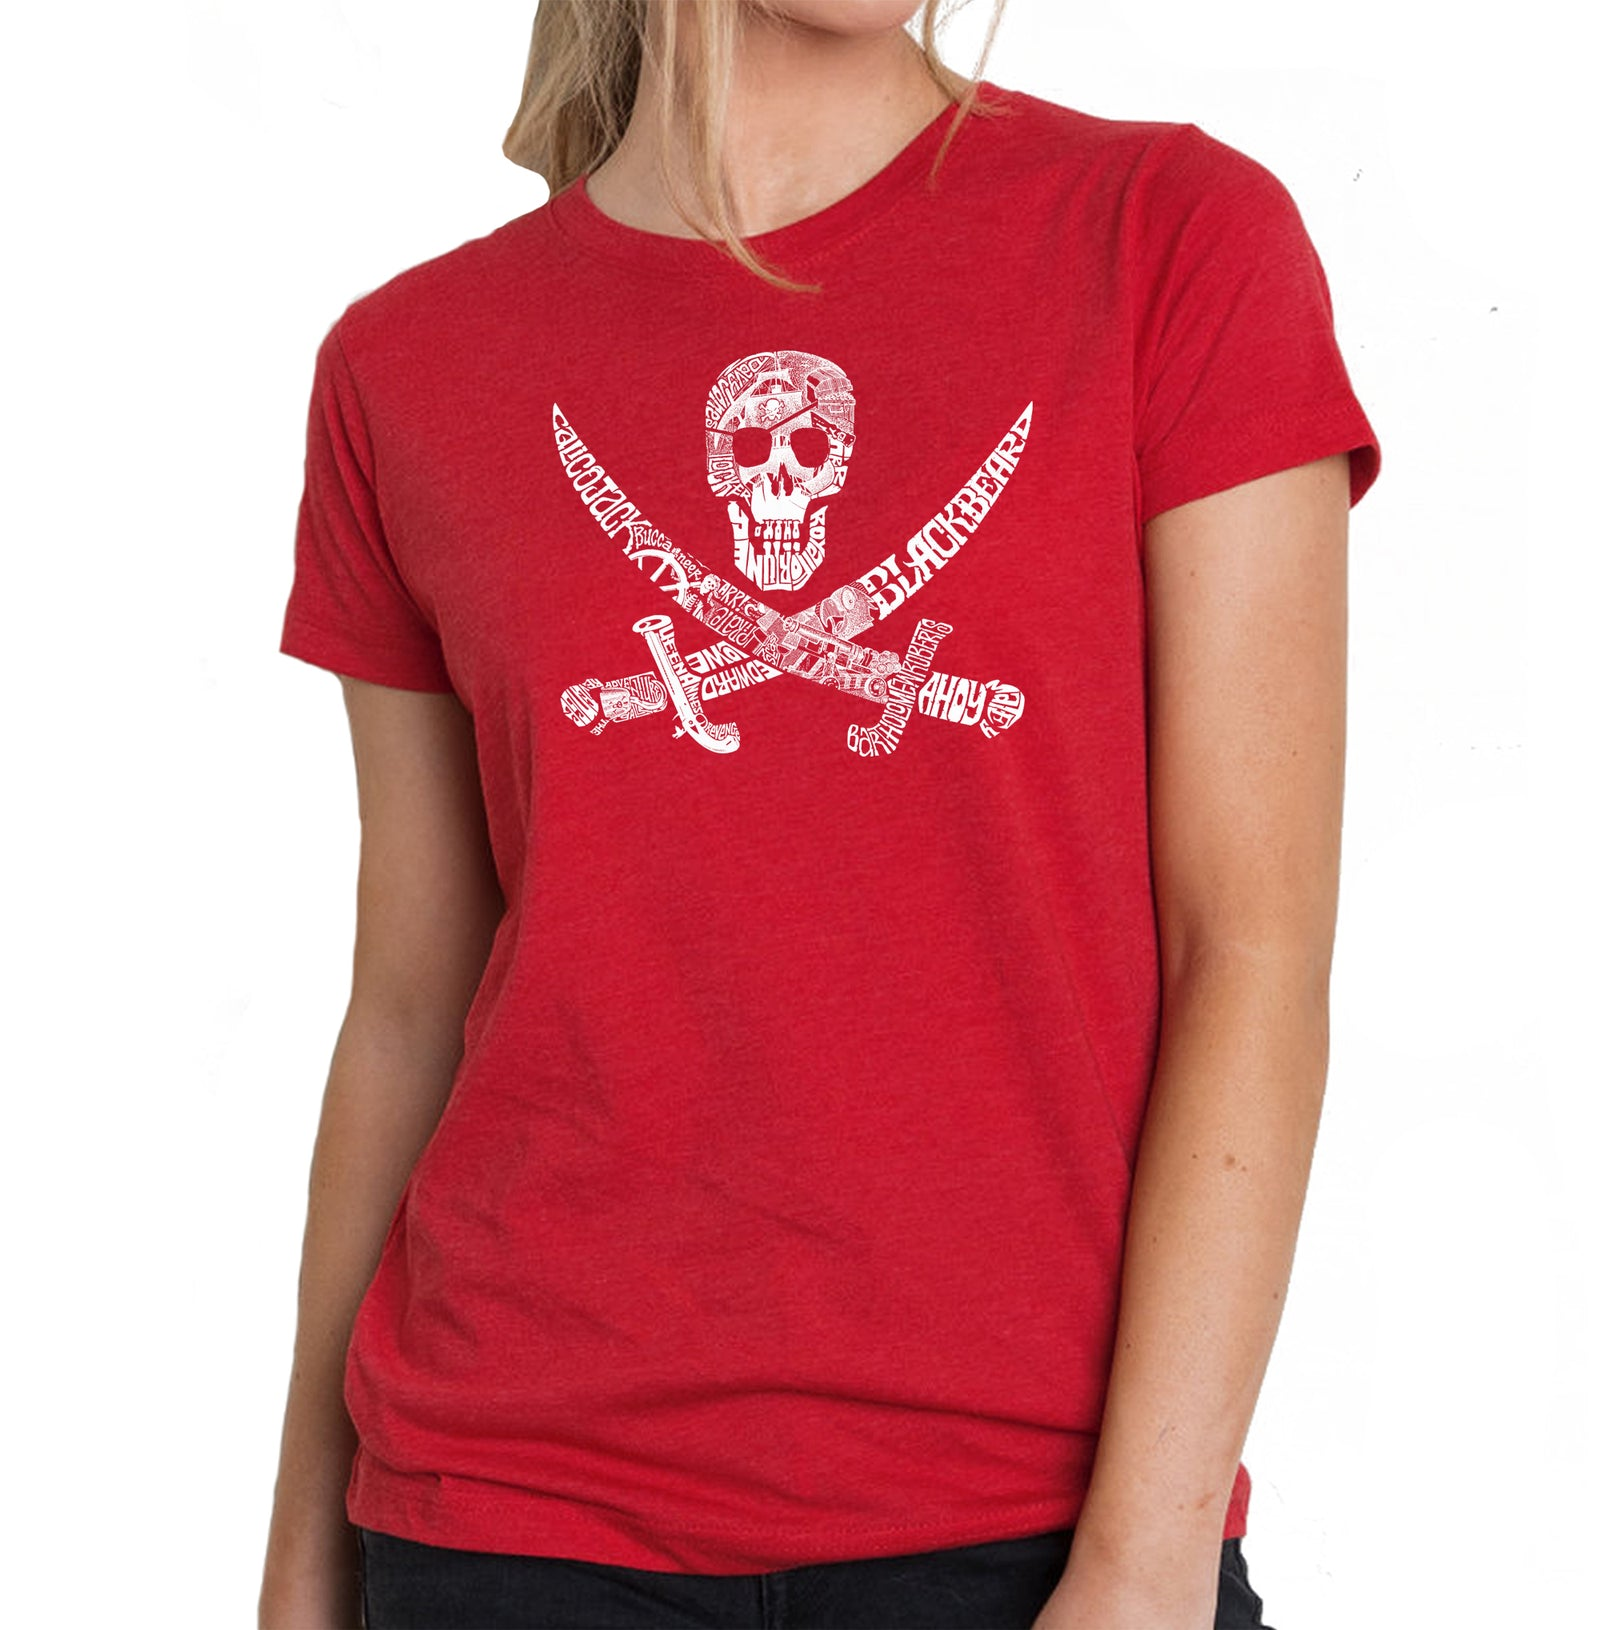 Women's Premium Blend Word Art T-shirt - PIRATE CAPTAINS, SHIPS AND IMAGERY